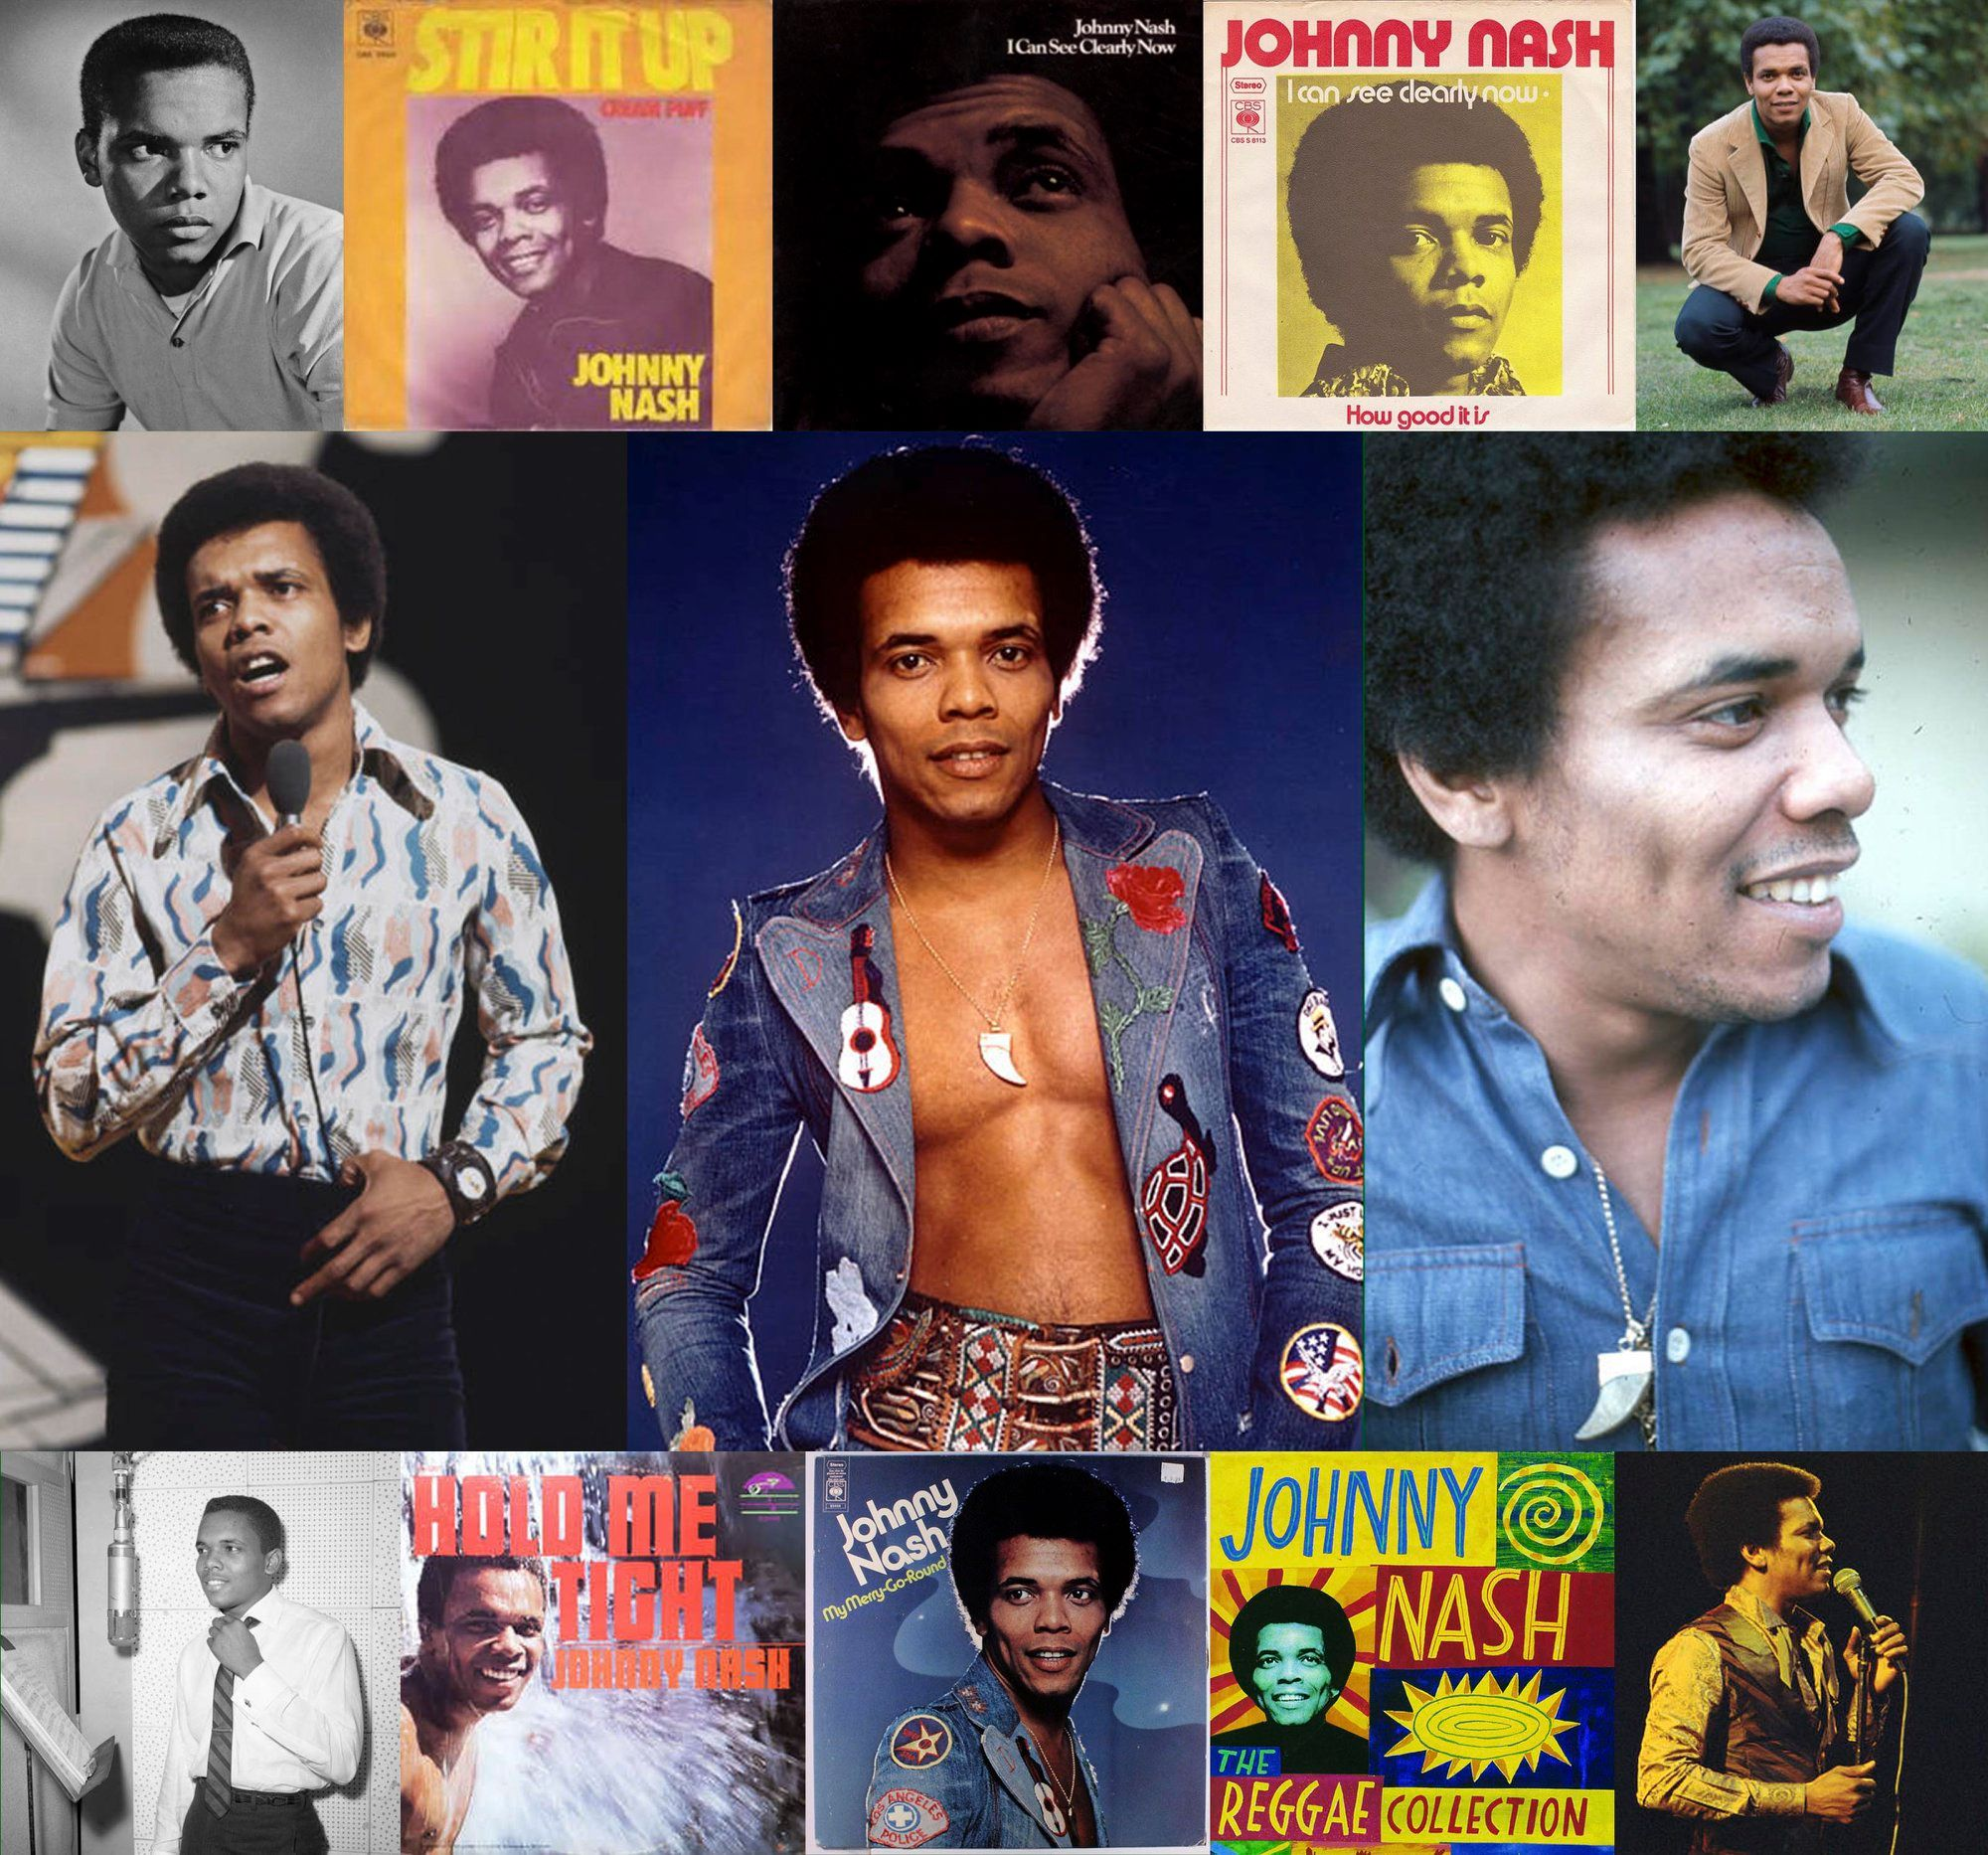 Wayne Chen On Twitter Johnny Nash American Singer Songwriter Born 80 Years Ago Today On 19 Aug 1940 In Houston 1972 Global Chart Topper I Can See Clearly Now Recorded In Jamaica 1968 Signed